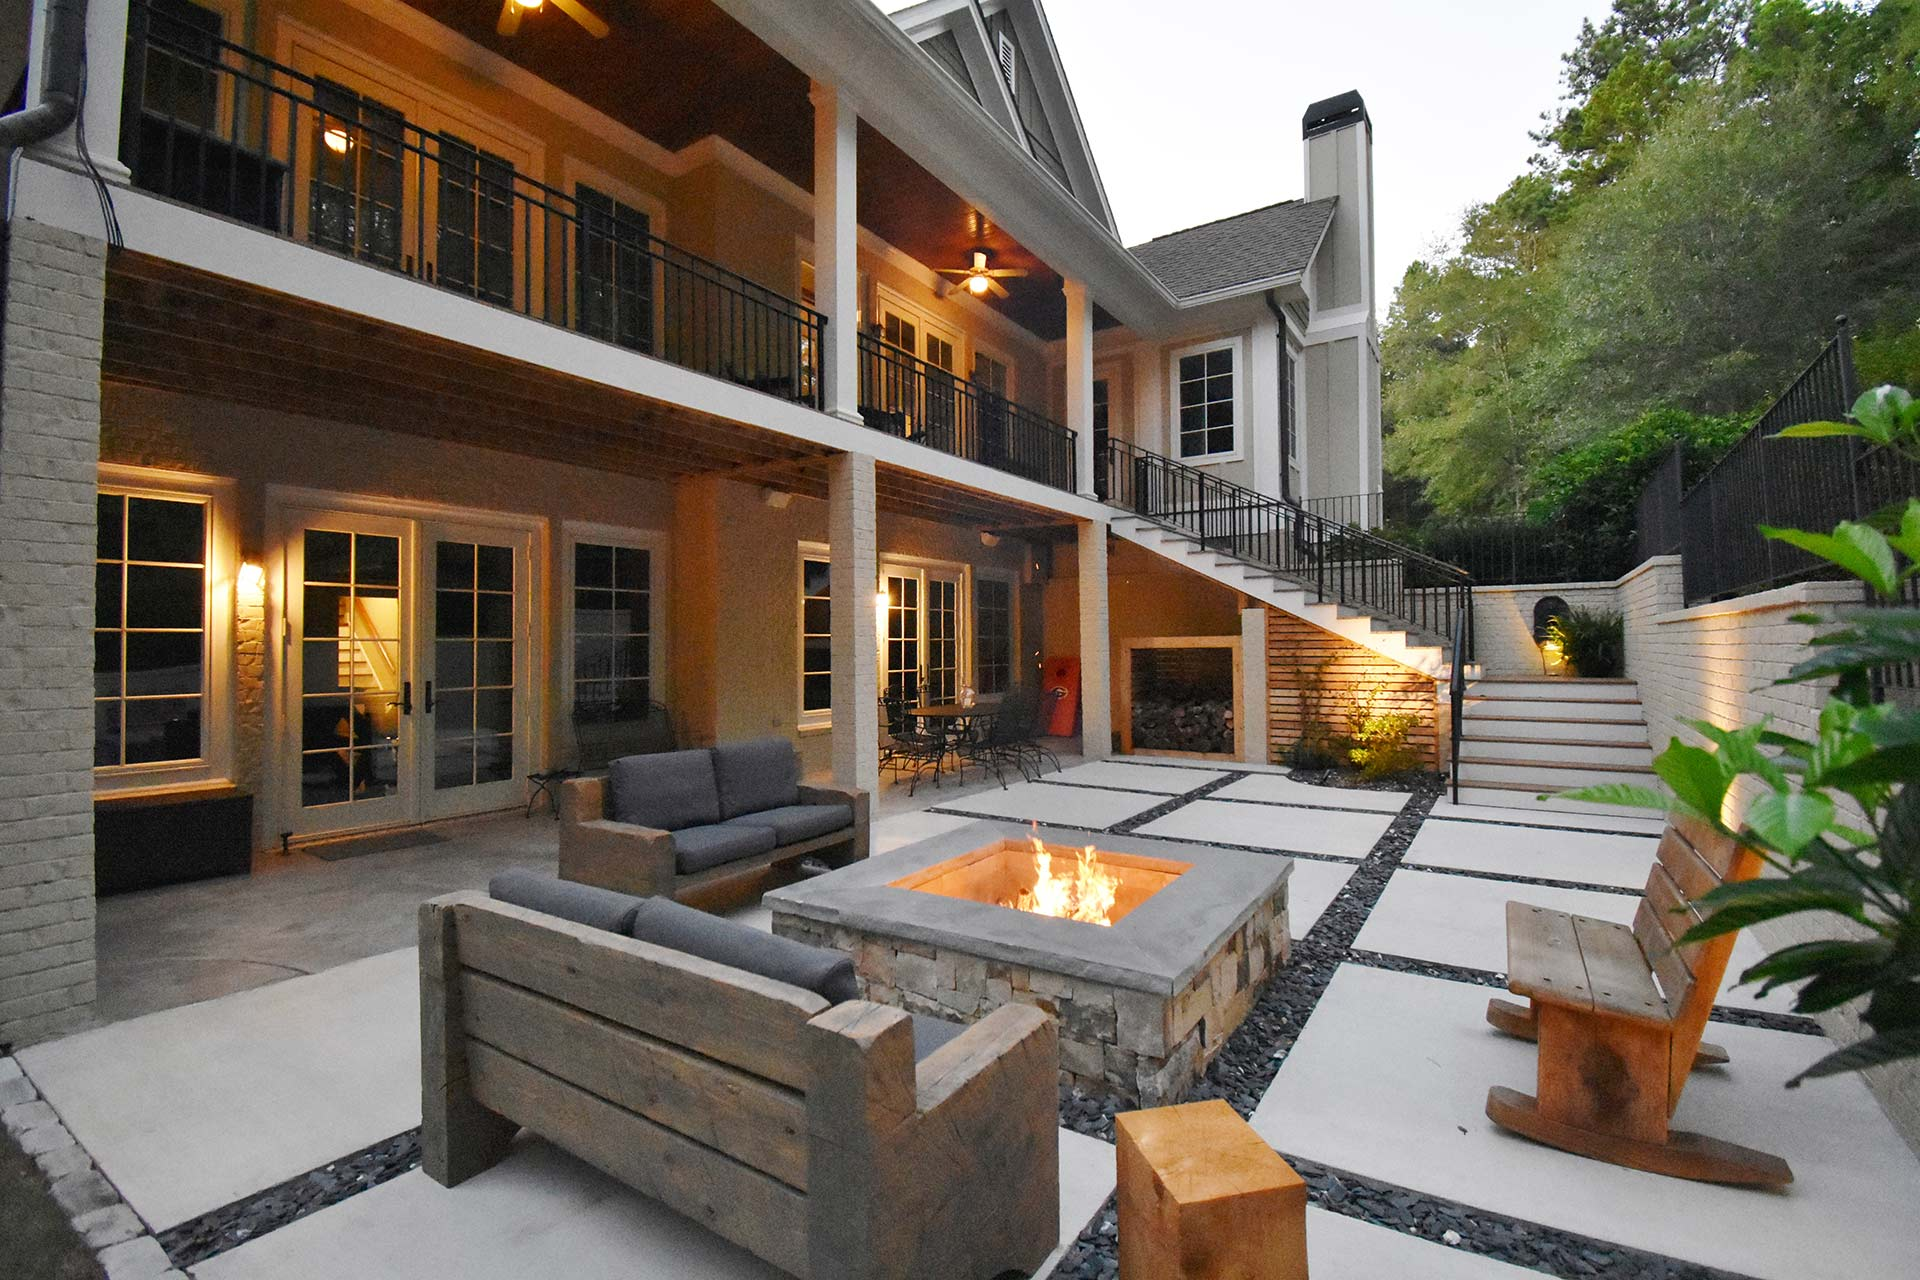 Concrete squares and custom fire pit